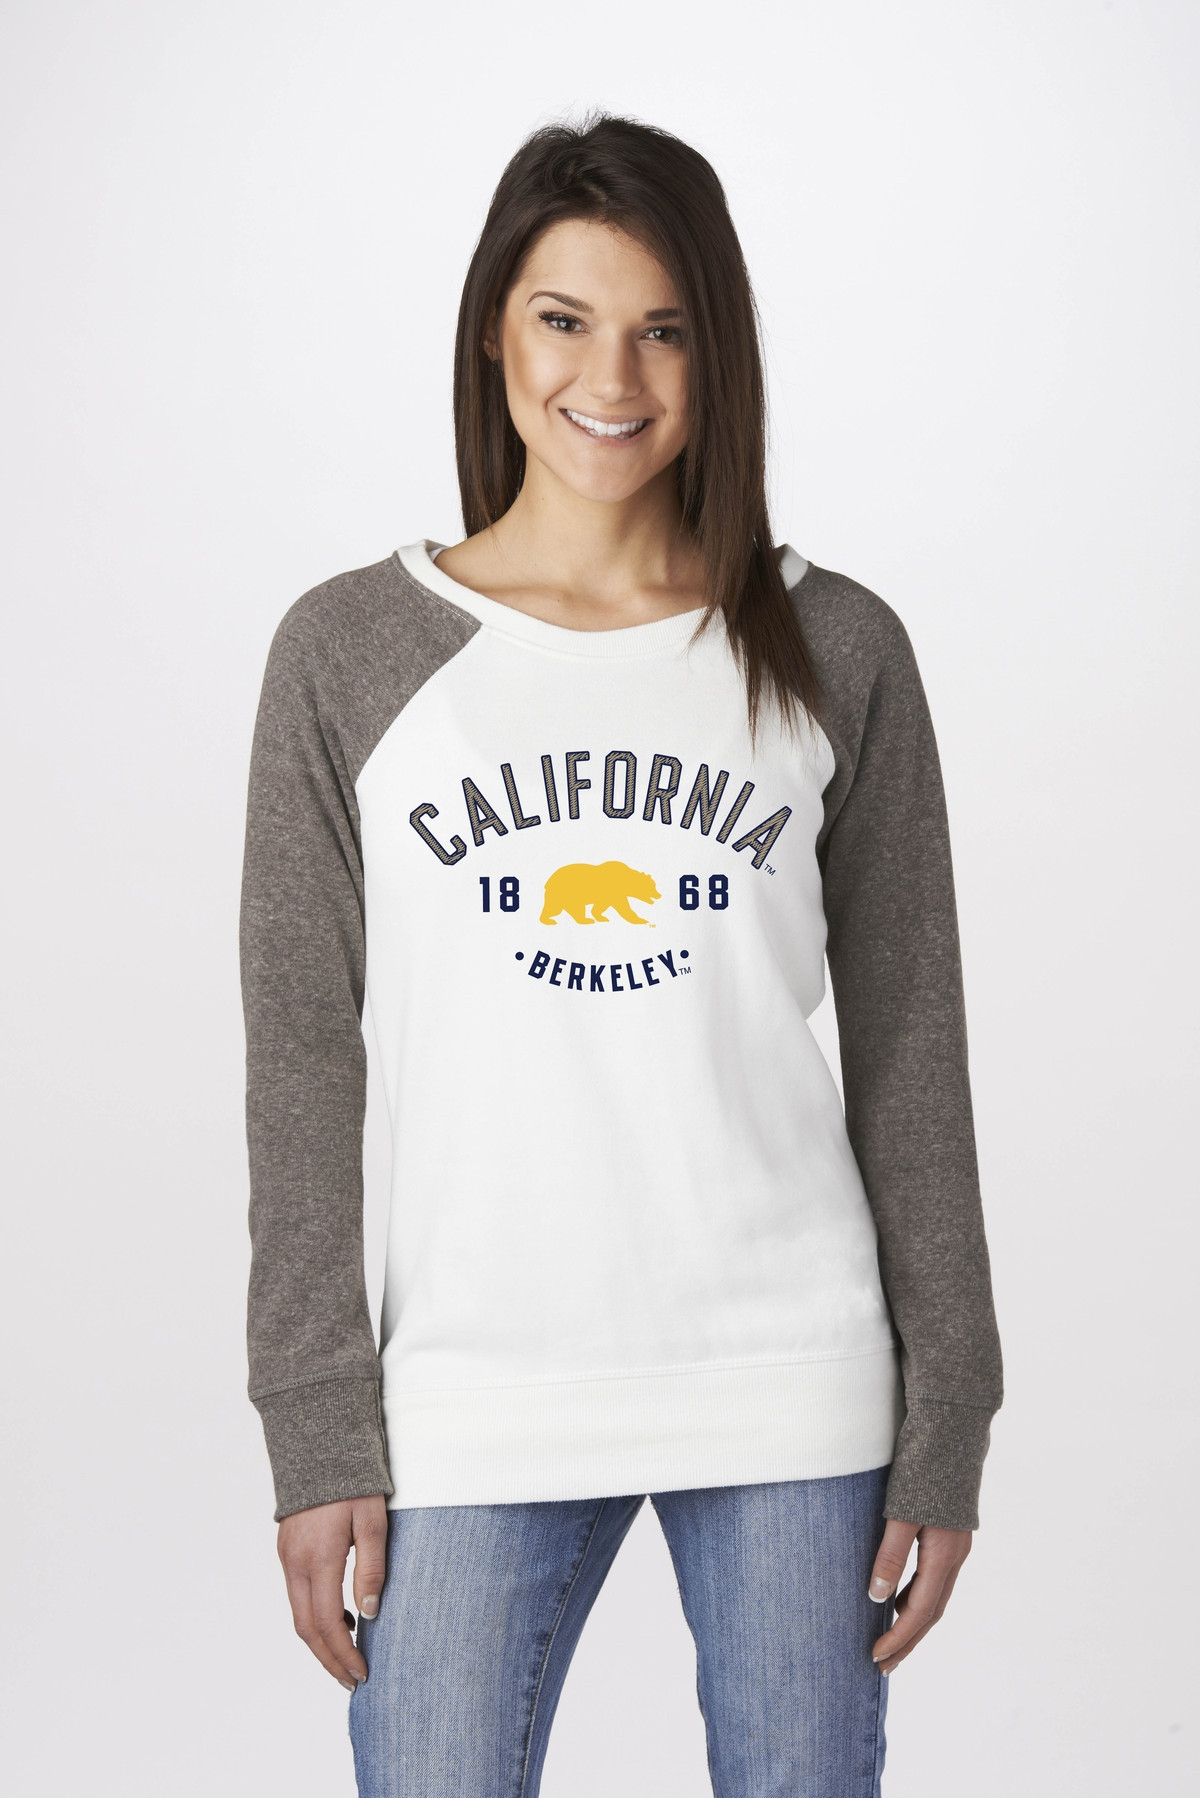 University of California Berkeley Women's Color Block Crew by Campus Crew